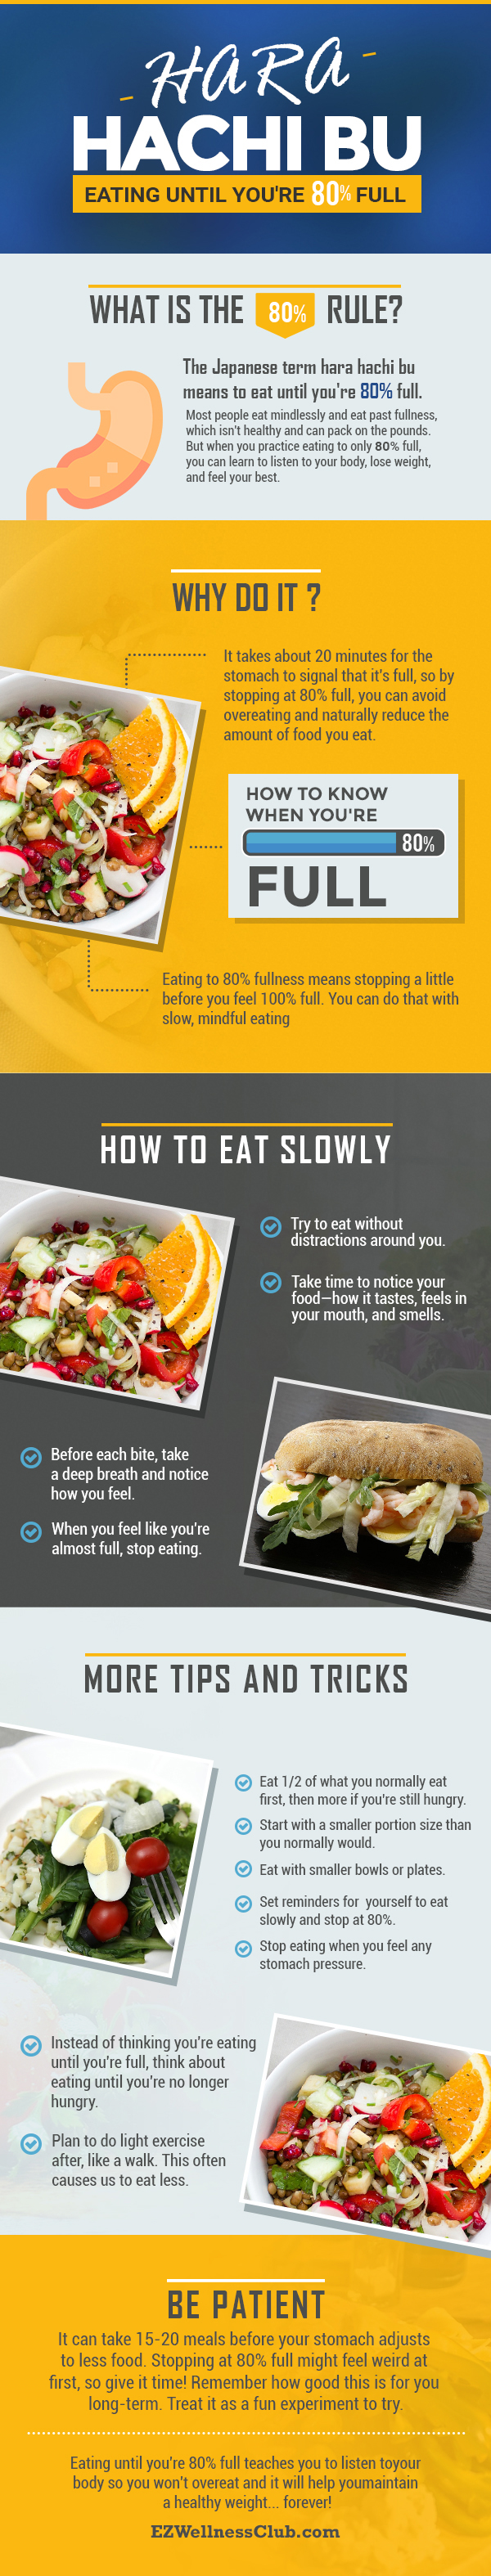 Weight loss tips and motivation image 9